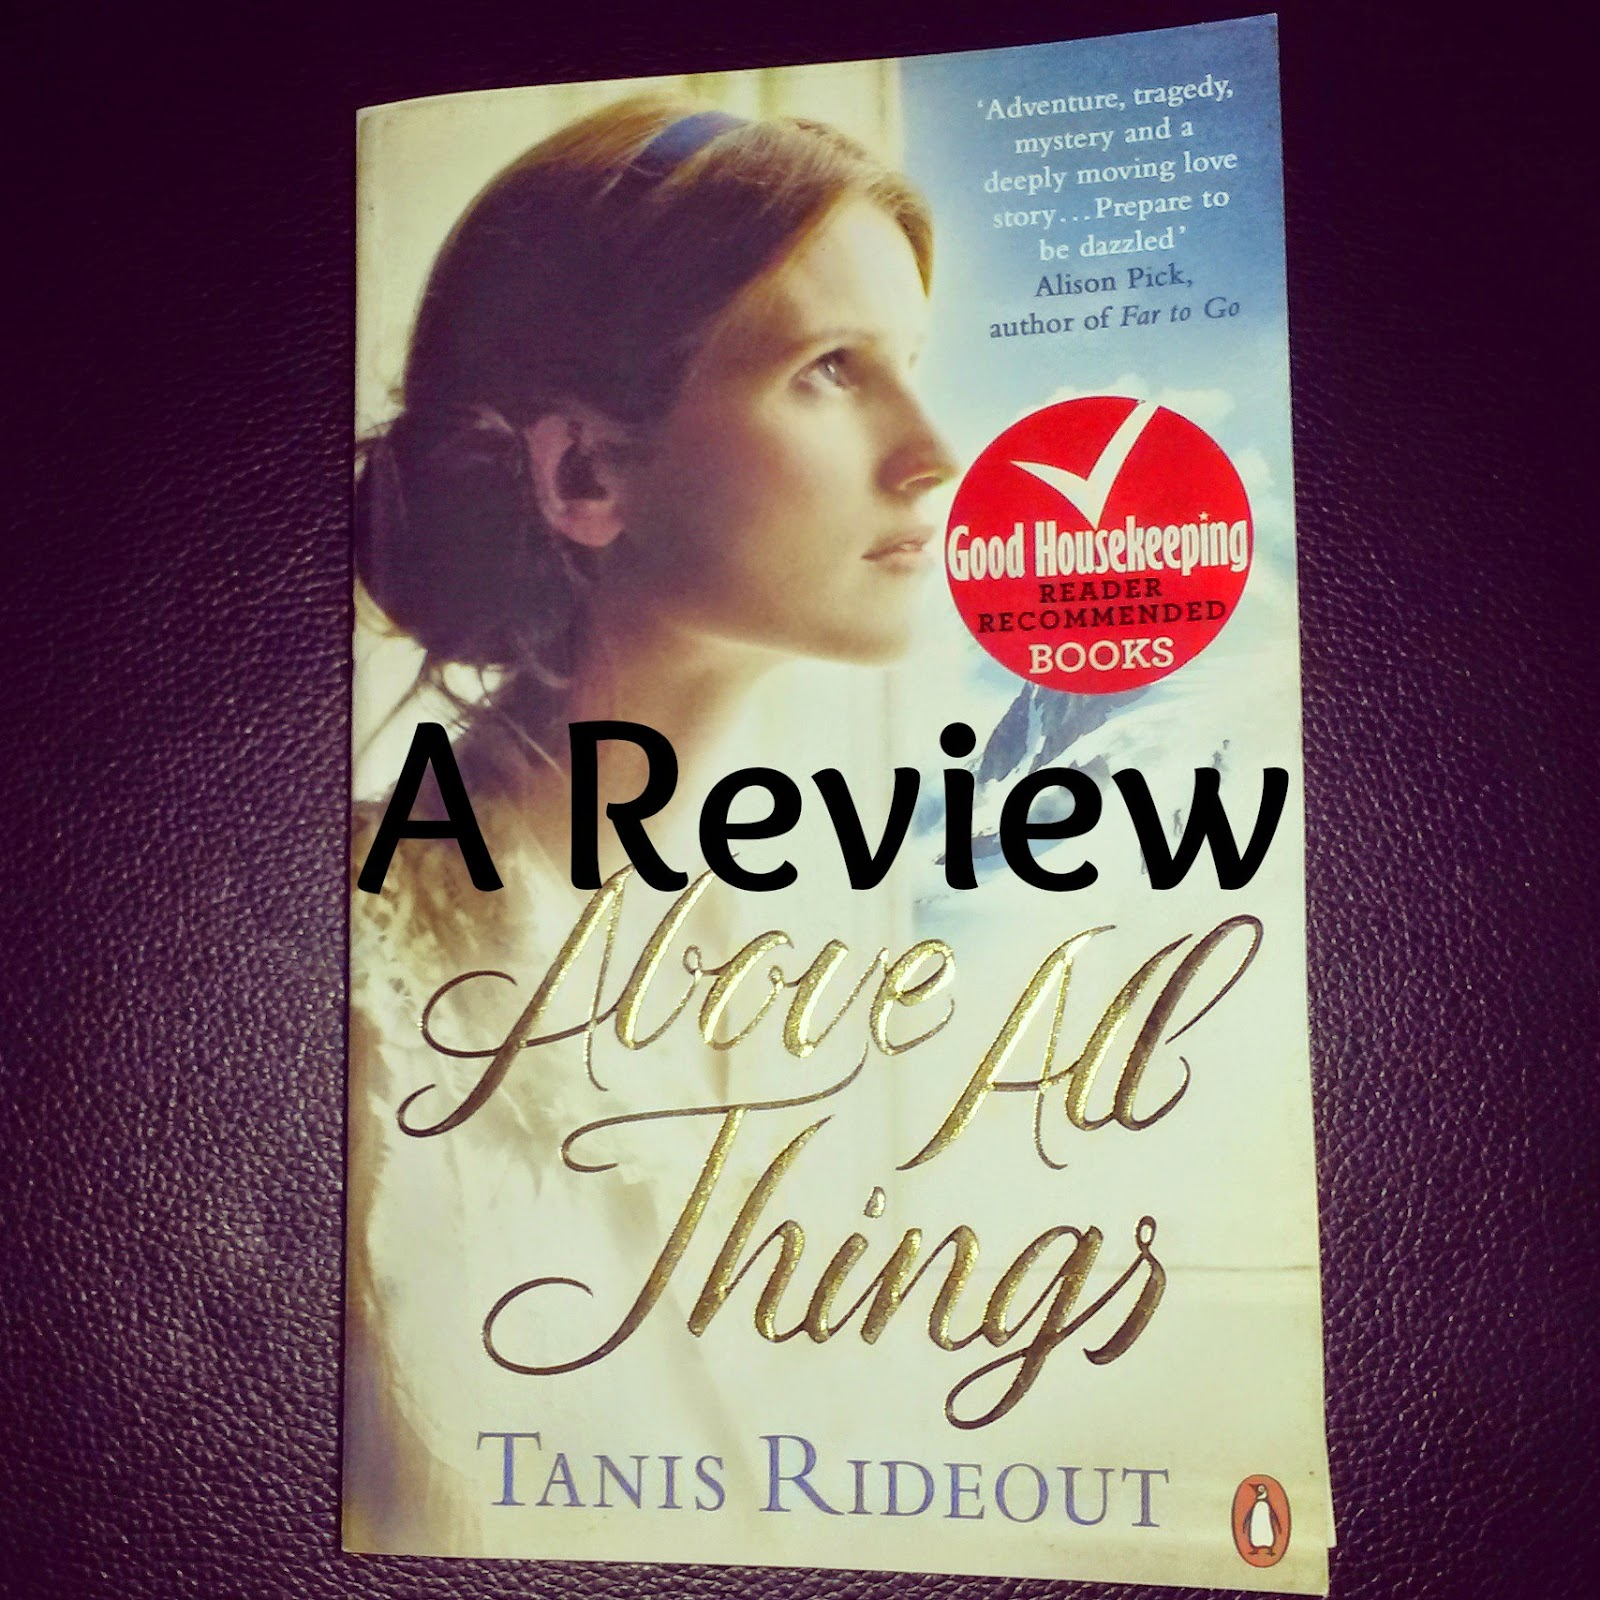 Review: Above All Things by Tanis Rideout